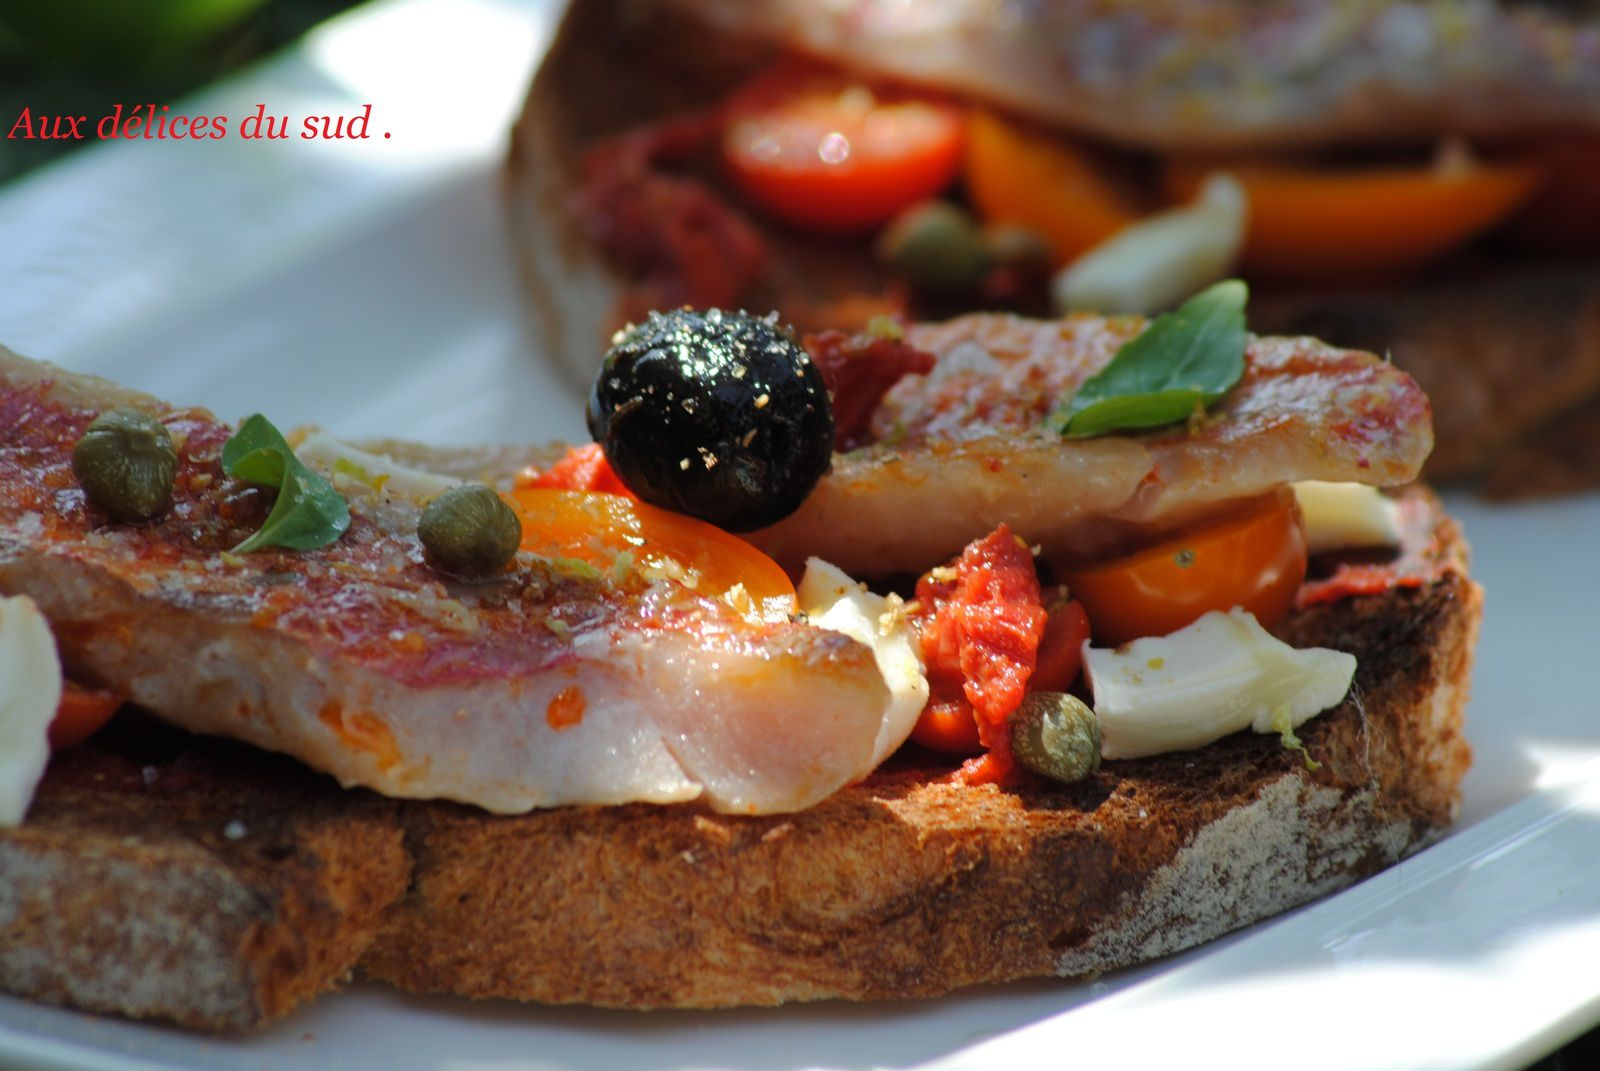 Bruschetta de filets de rouget et tomates cerise .